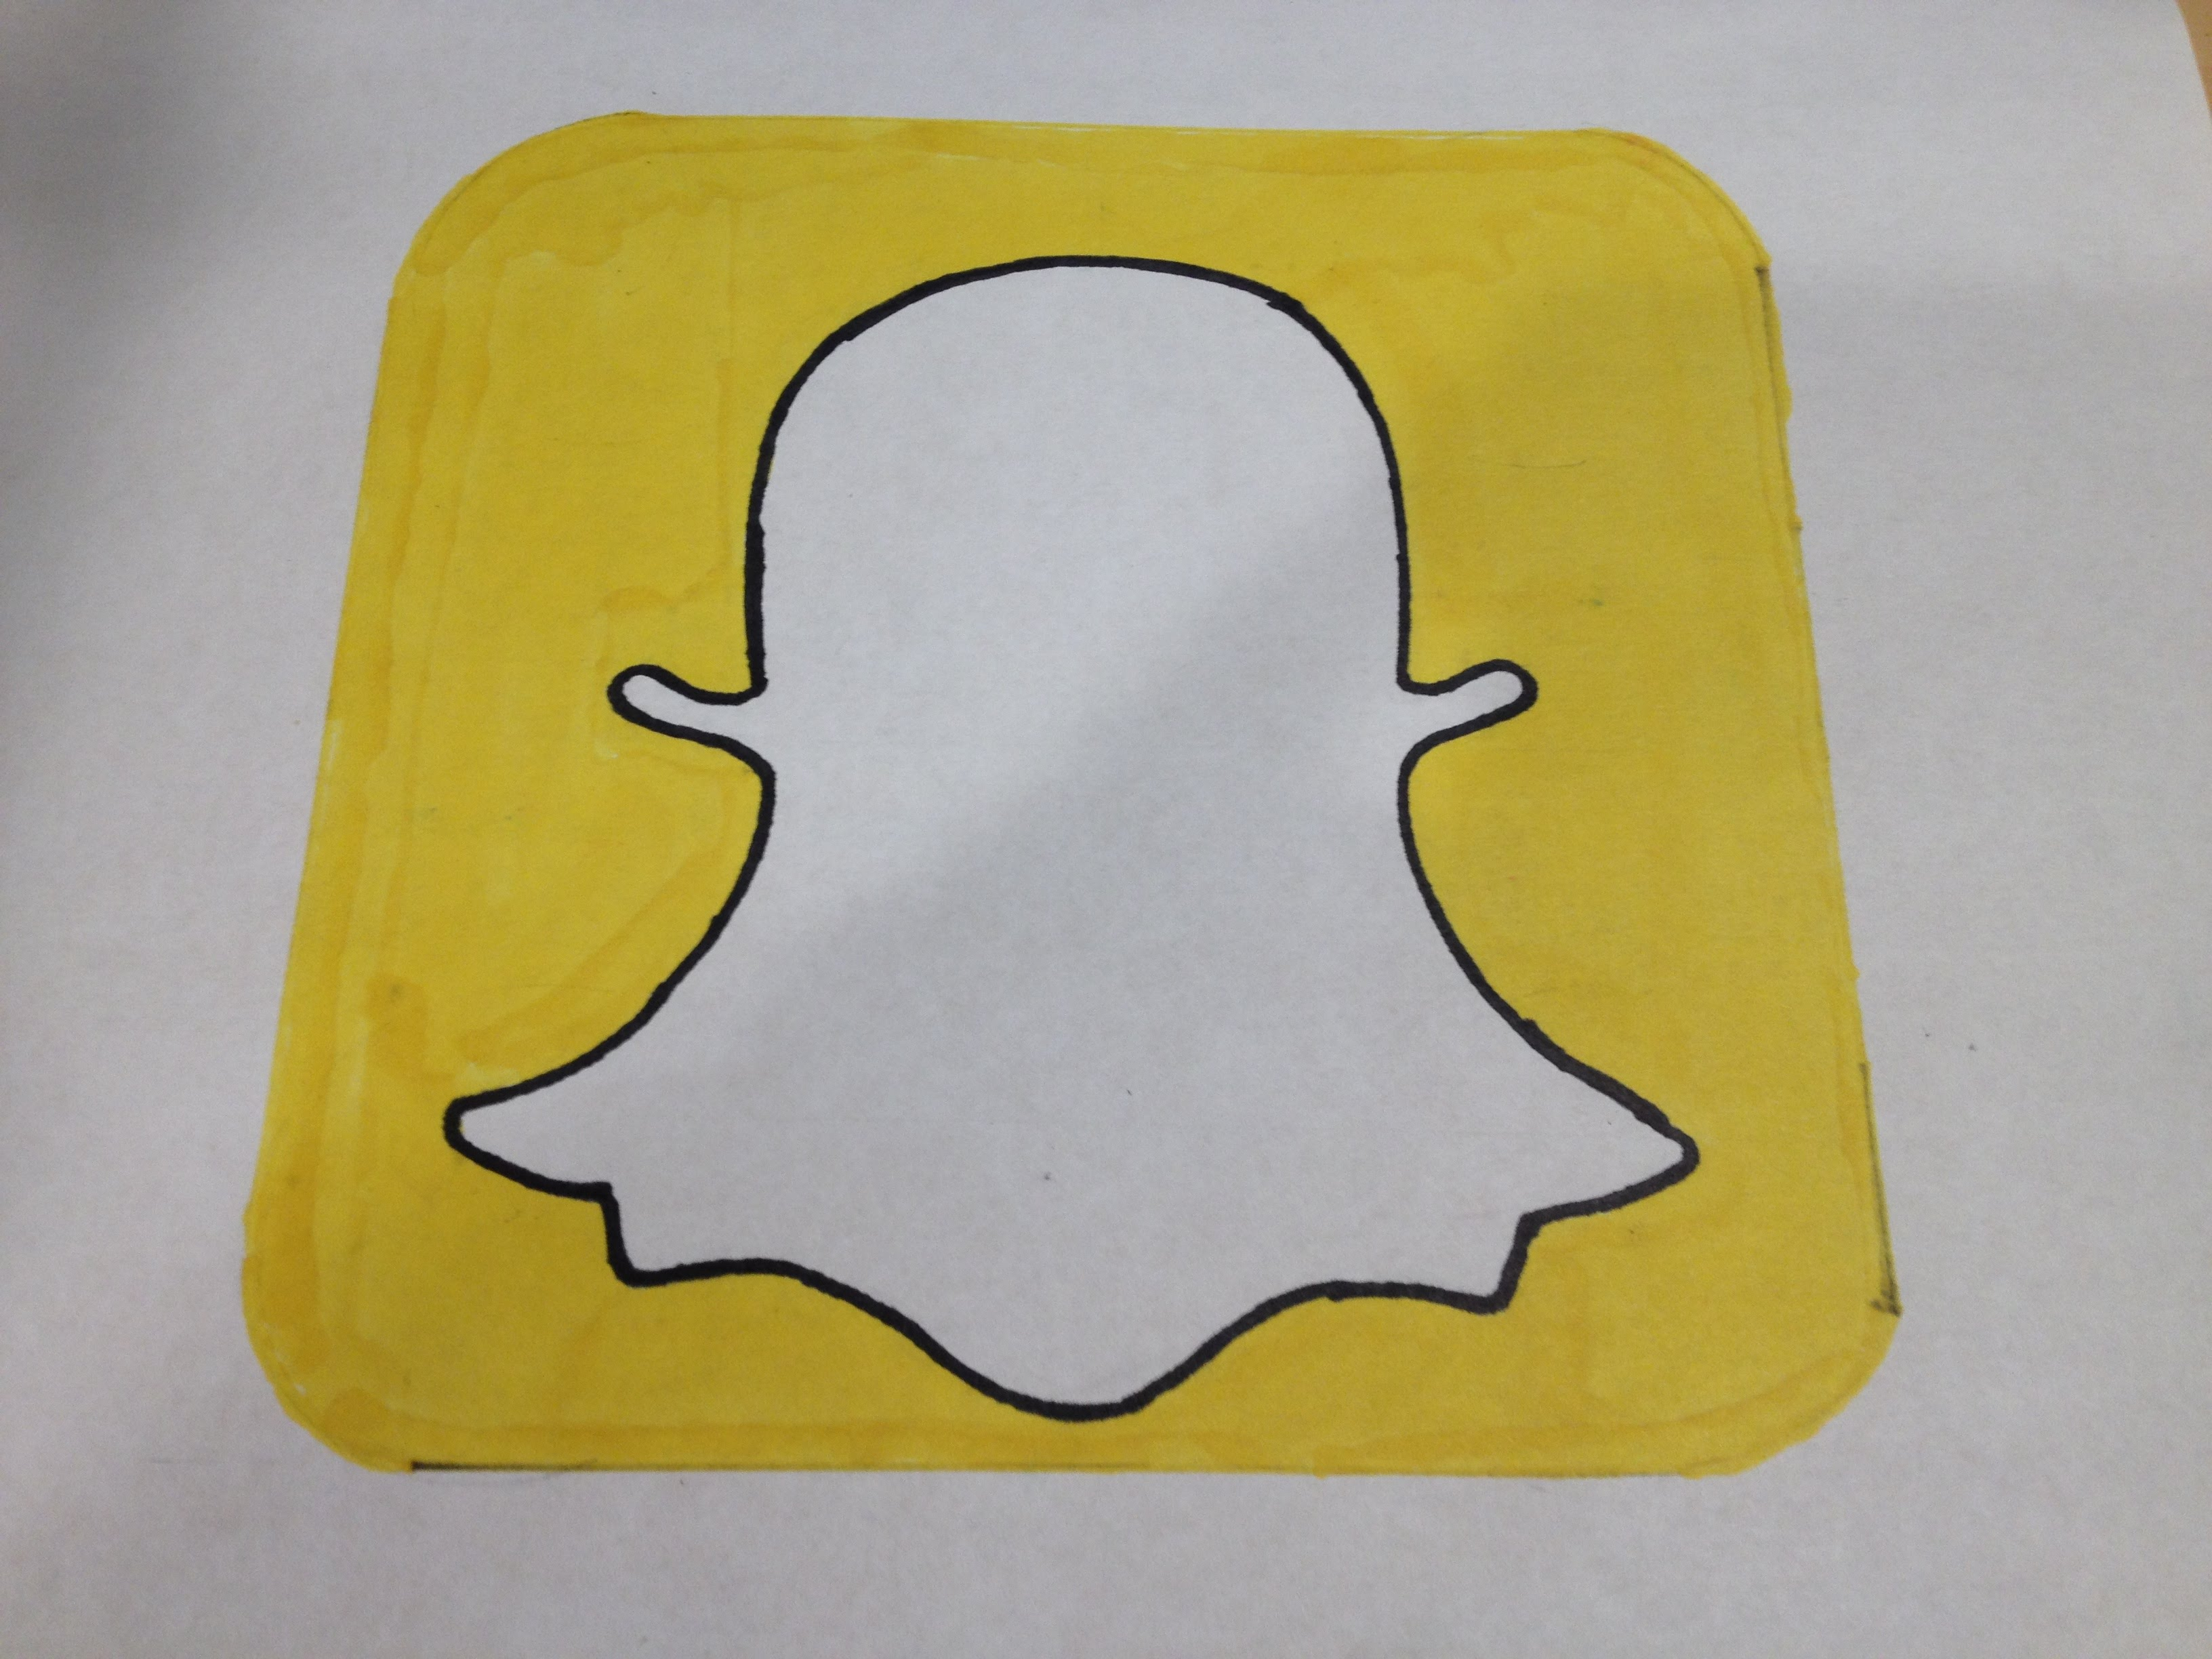 3264x2448 How To Draw The Snapchat Logo Logo Drawing